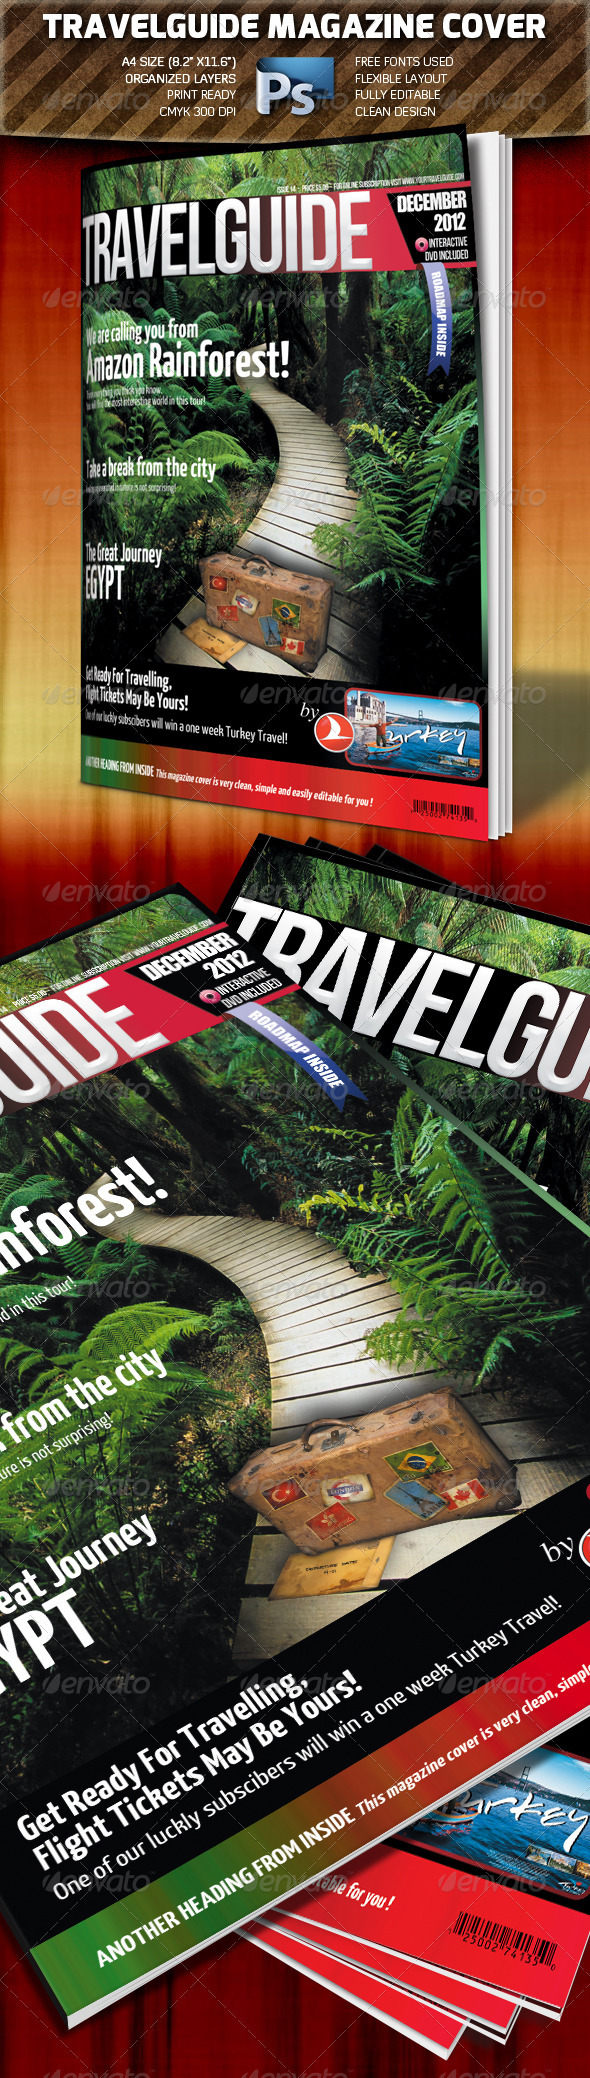 Travel Guide Magazine Cover - Magazines Print Templates